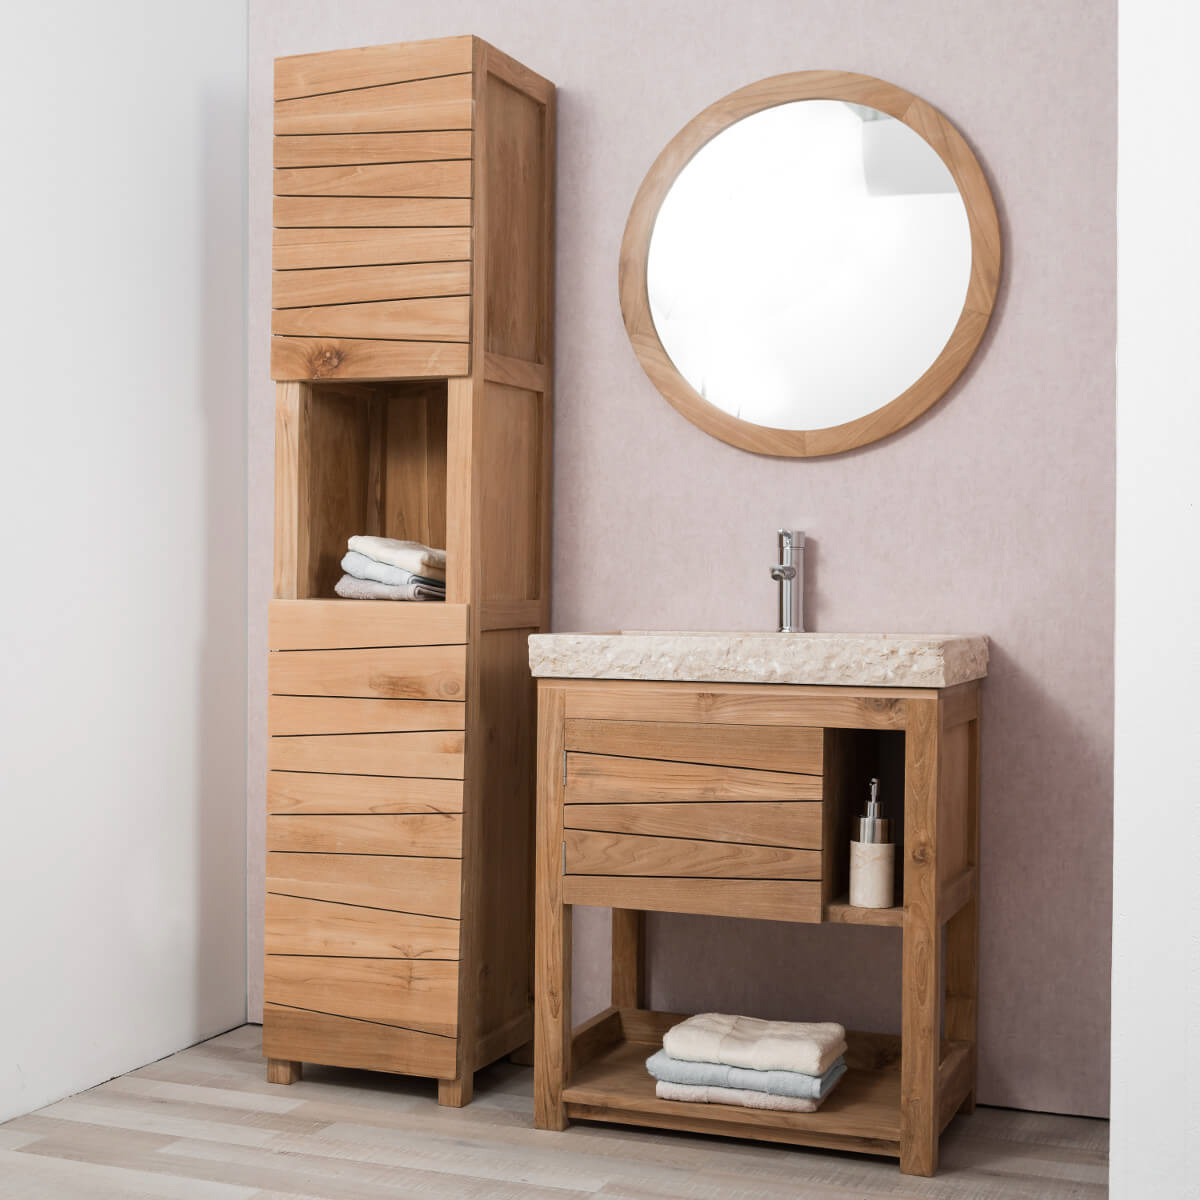 miroir de salle de bain en bois teck massif hublot. Black Bedroom Furniture Sets. Home Design Ideas